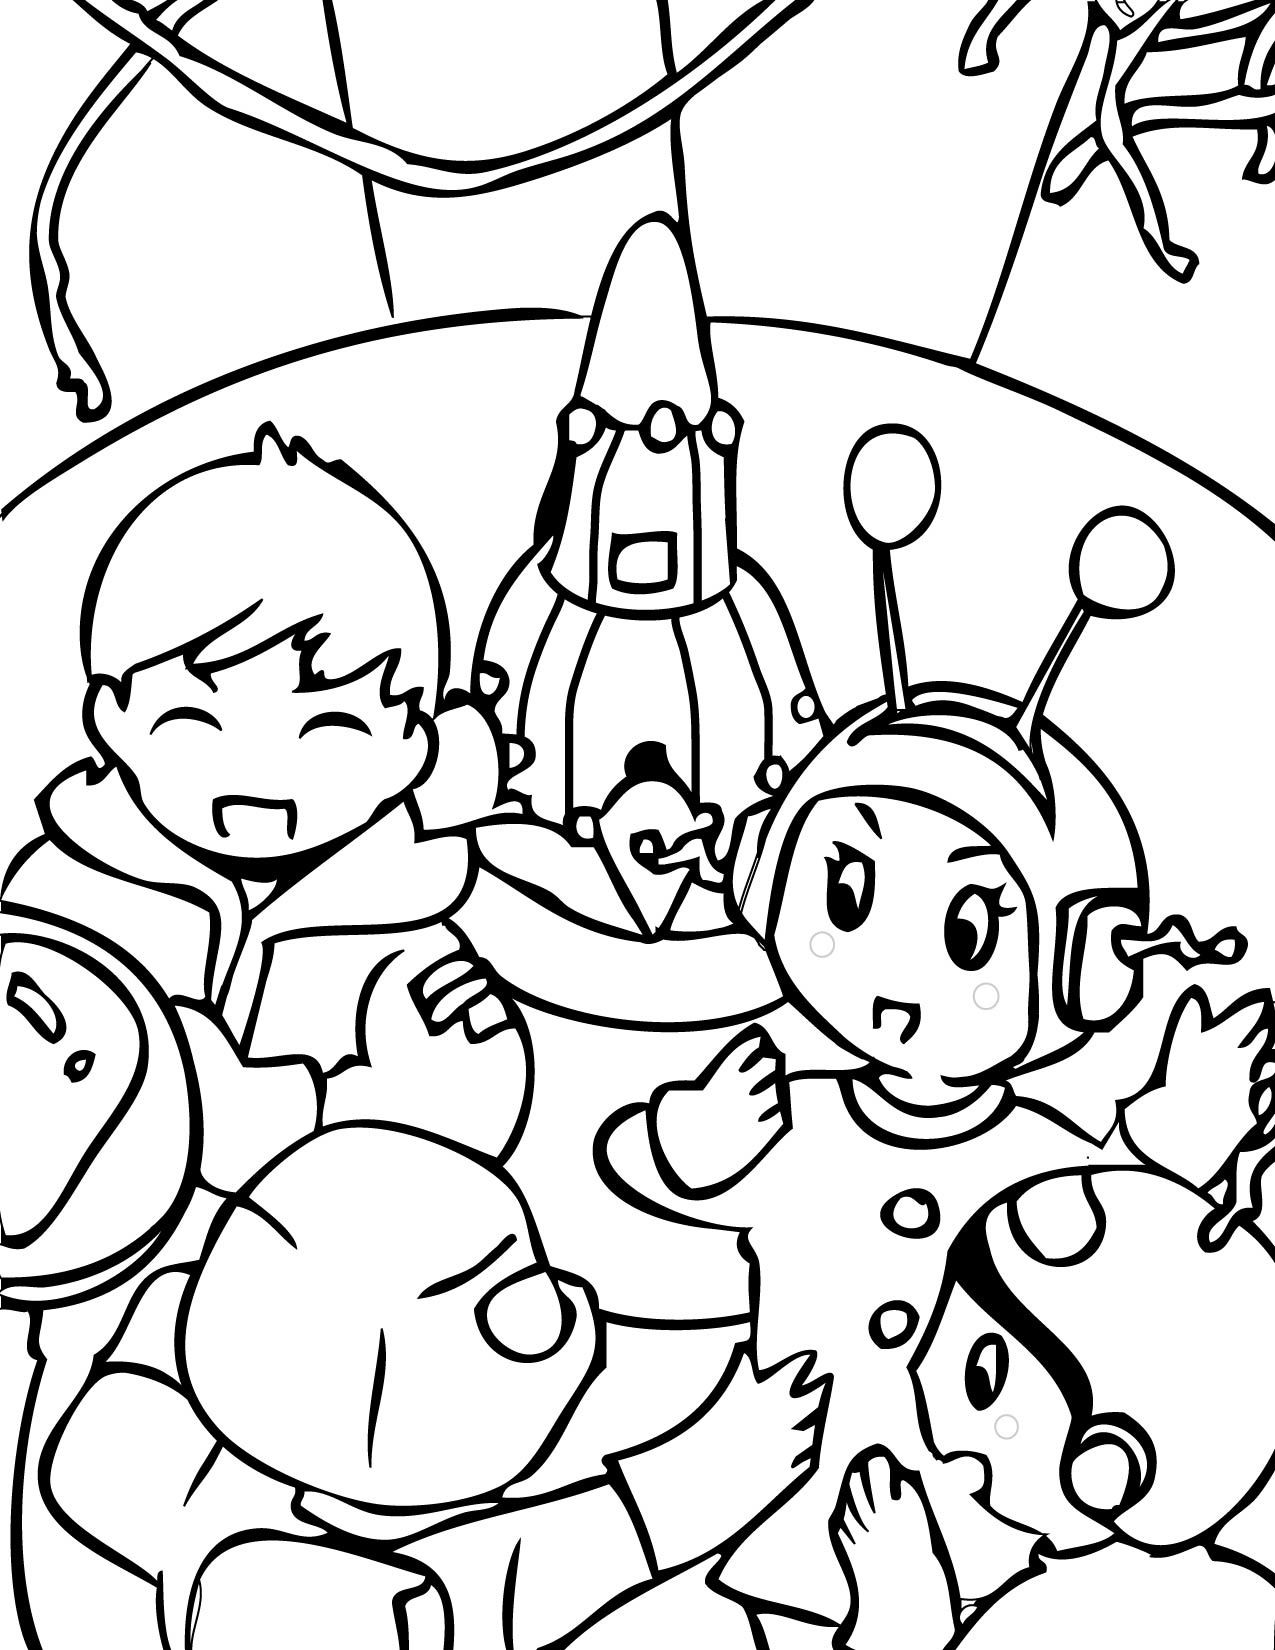 Outer Space Coloring Pages - Coloring Home